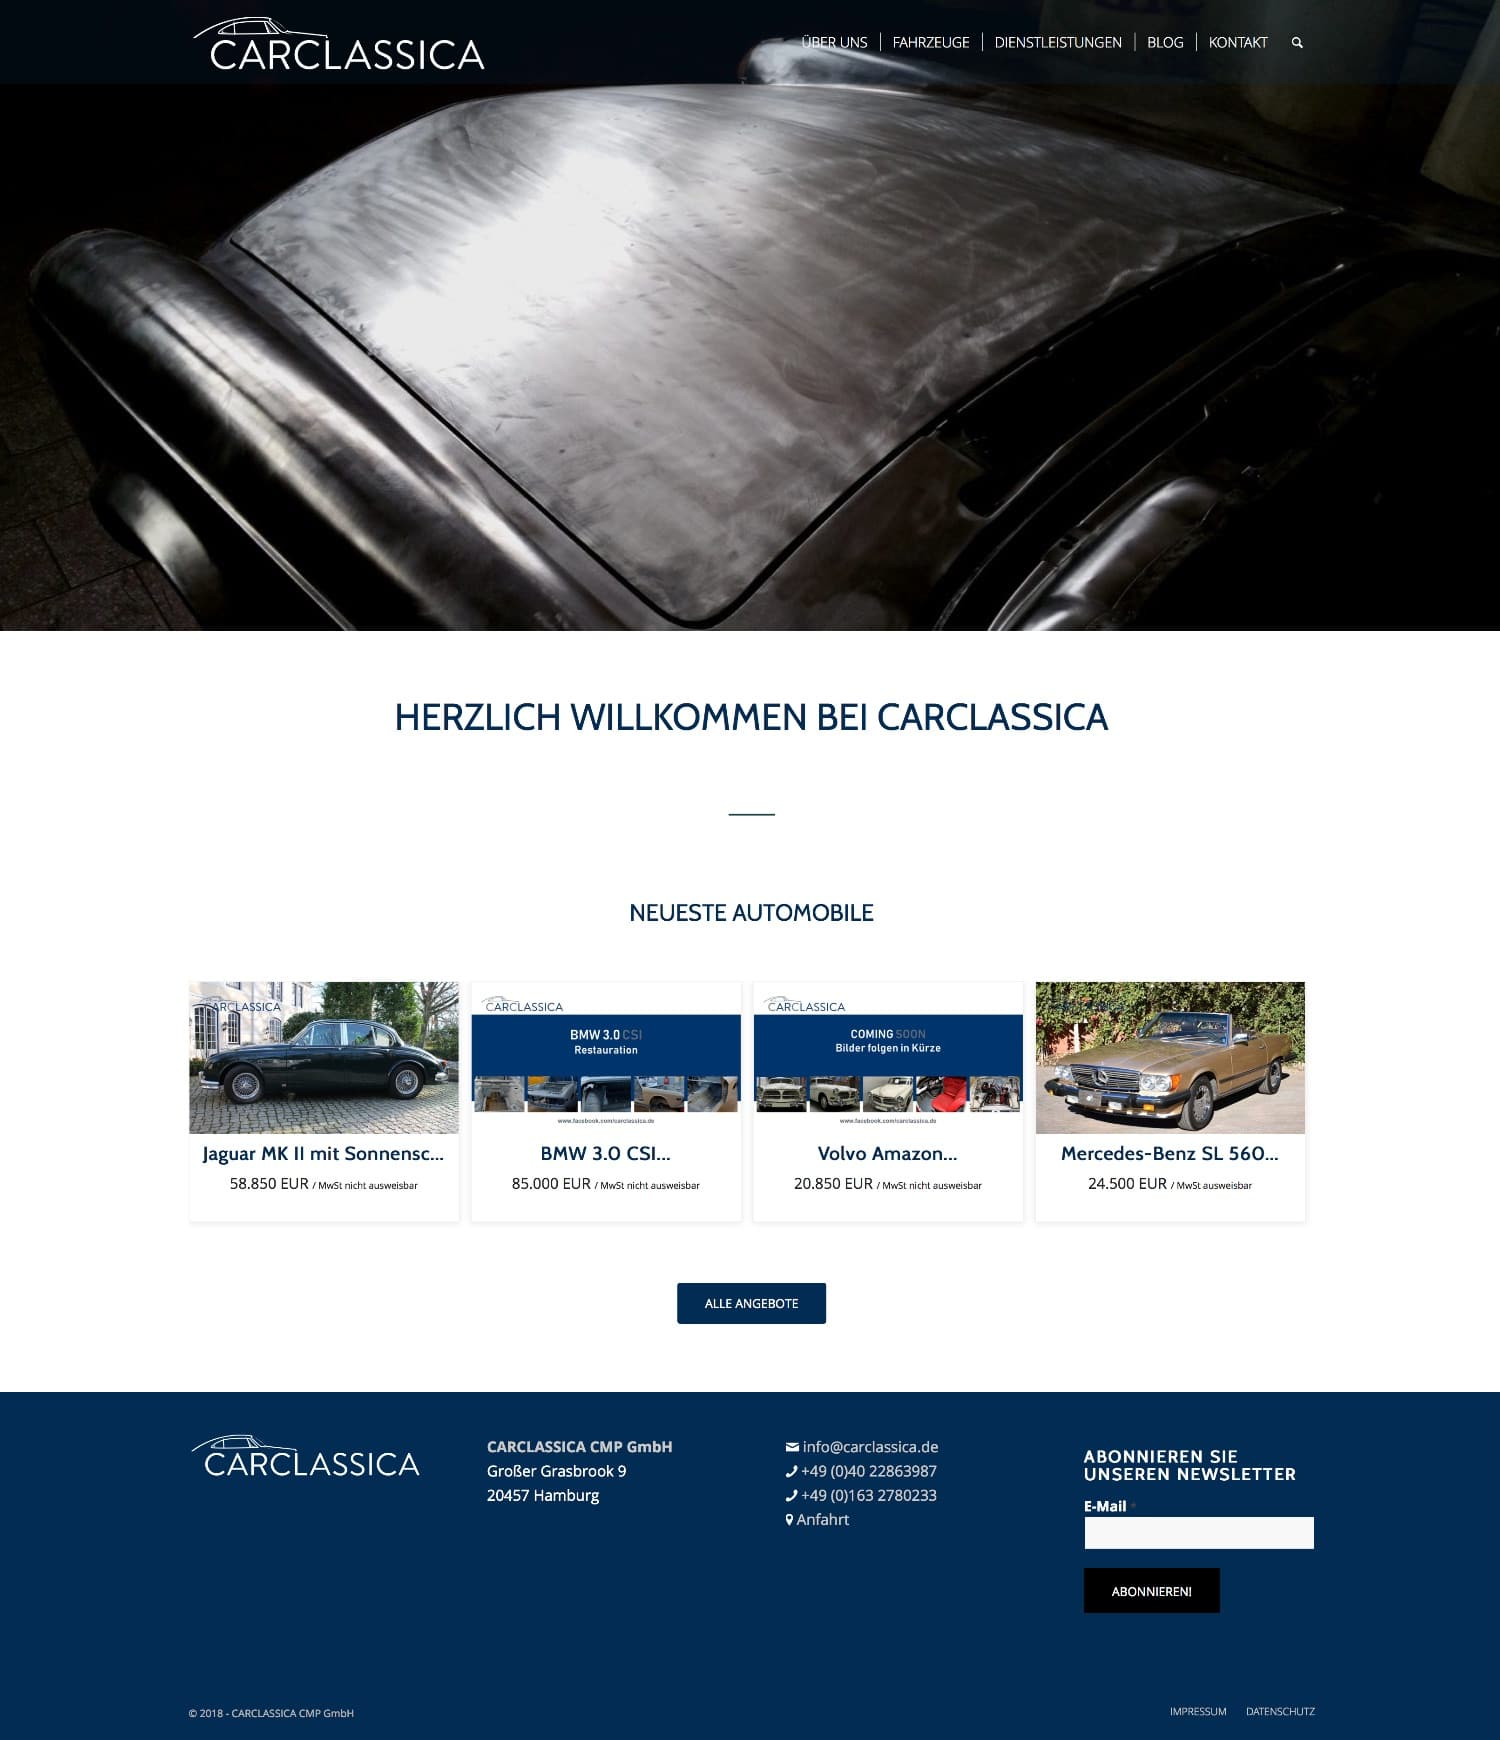 CARCLASSICA Website